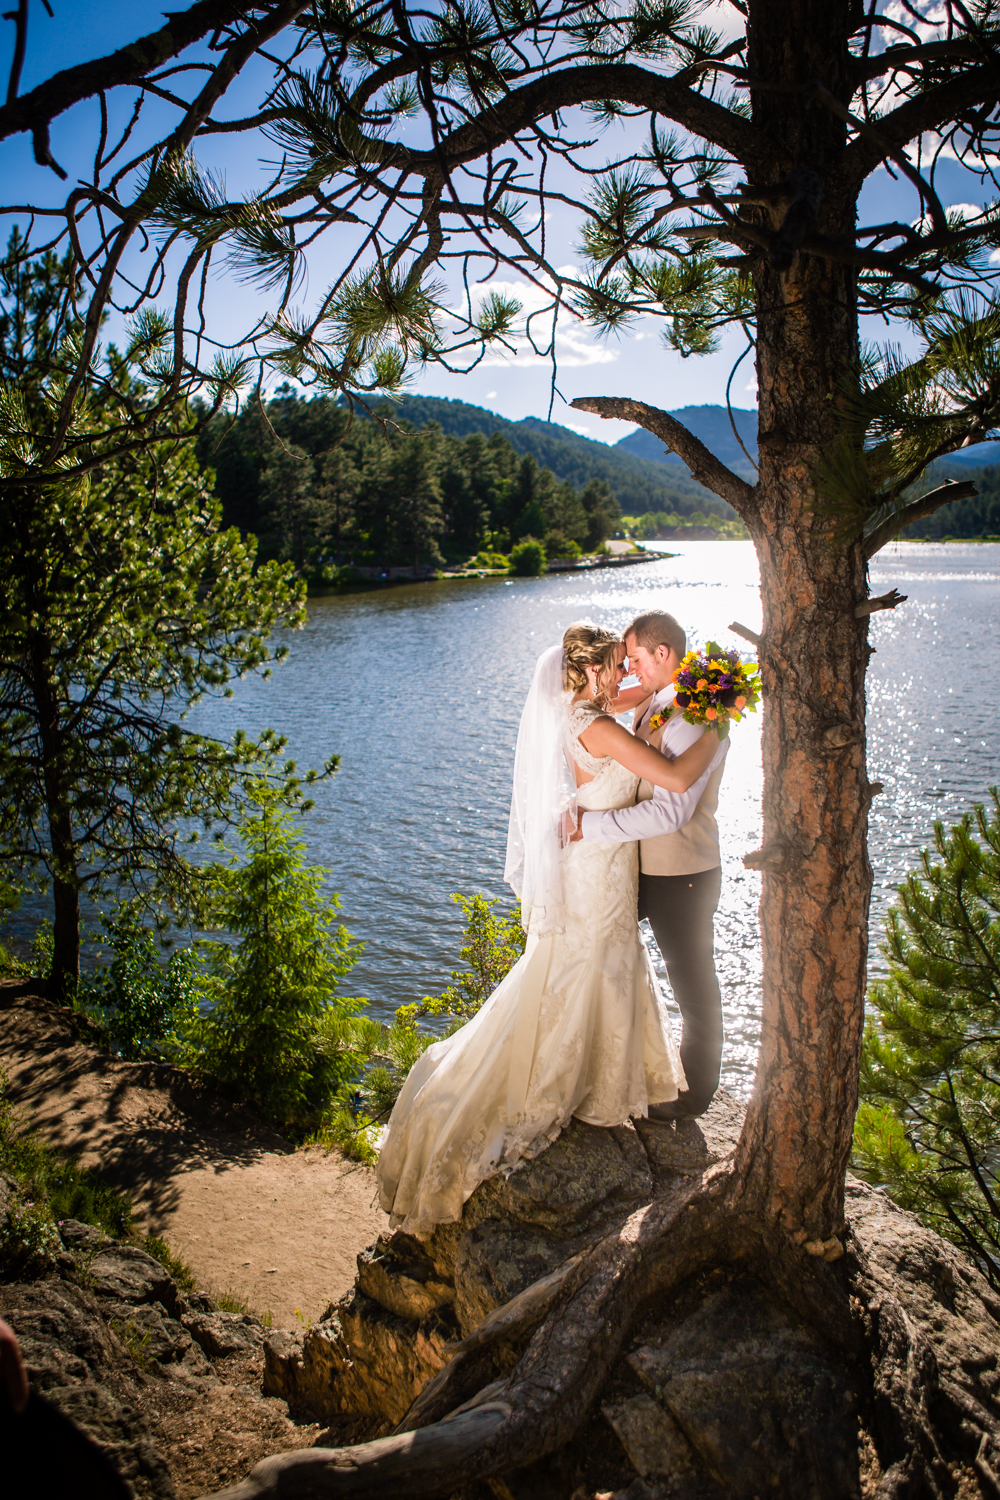 Evergreen Lake. Wedding at The barn at Evergreen Memorial. Photographed by JMGant Photography.